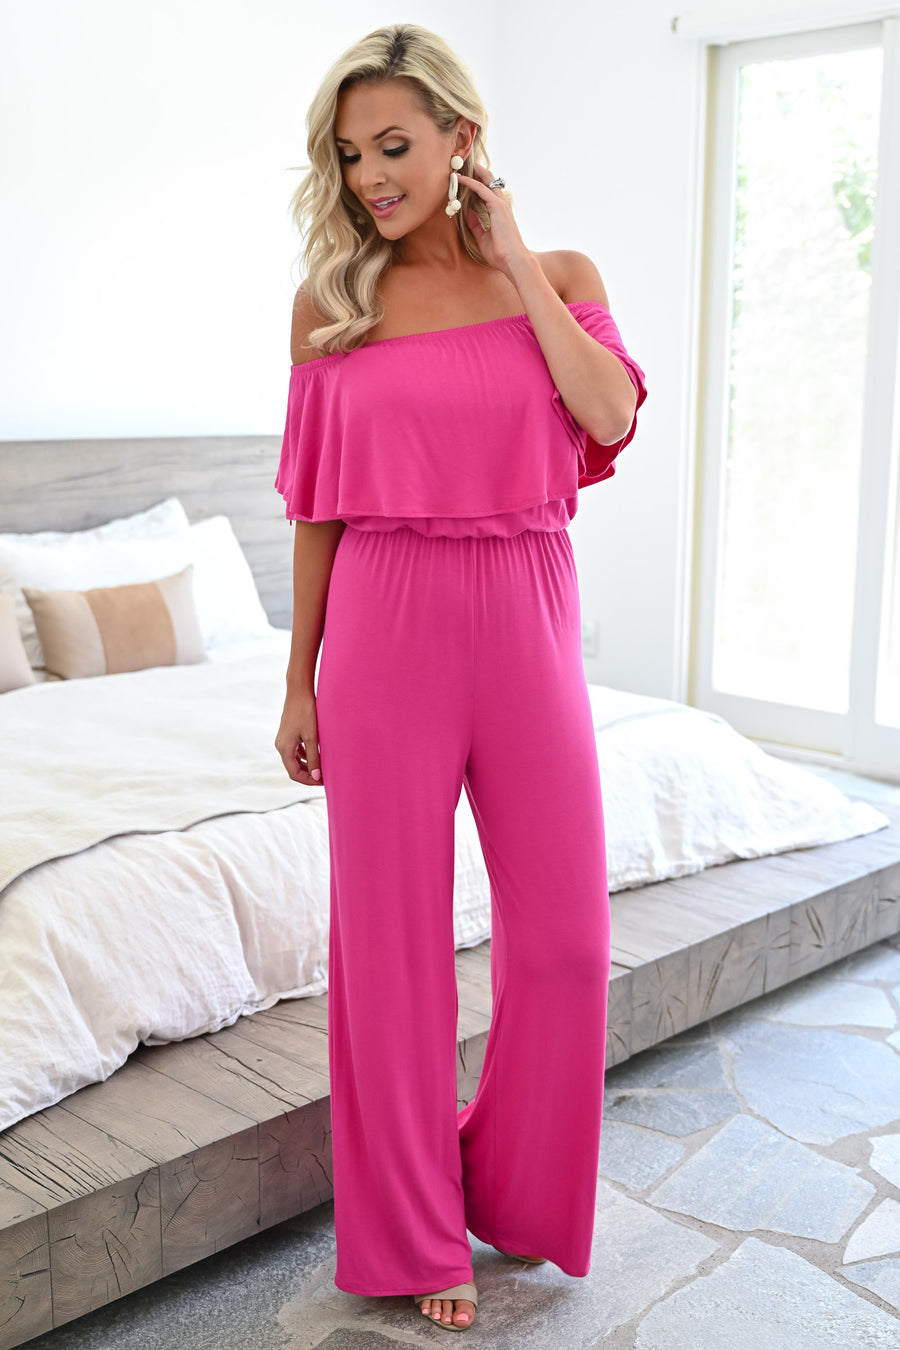 Here For The Party Jumpsuit - Hot Pink womens trendy off the should ruffle detail jumpsuit closet candy front